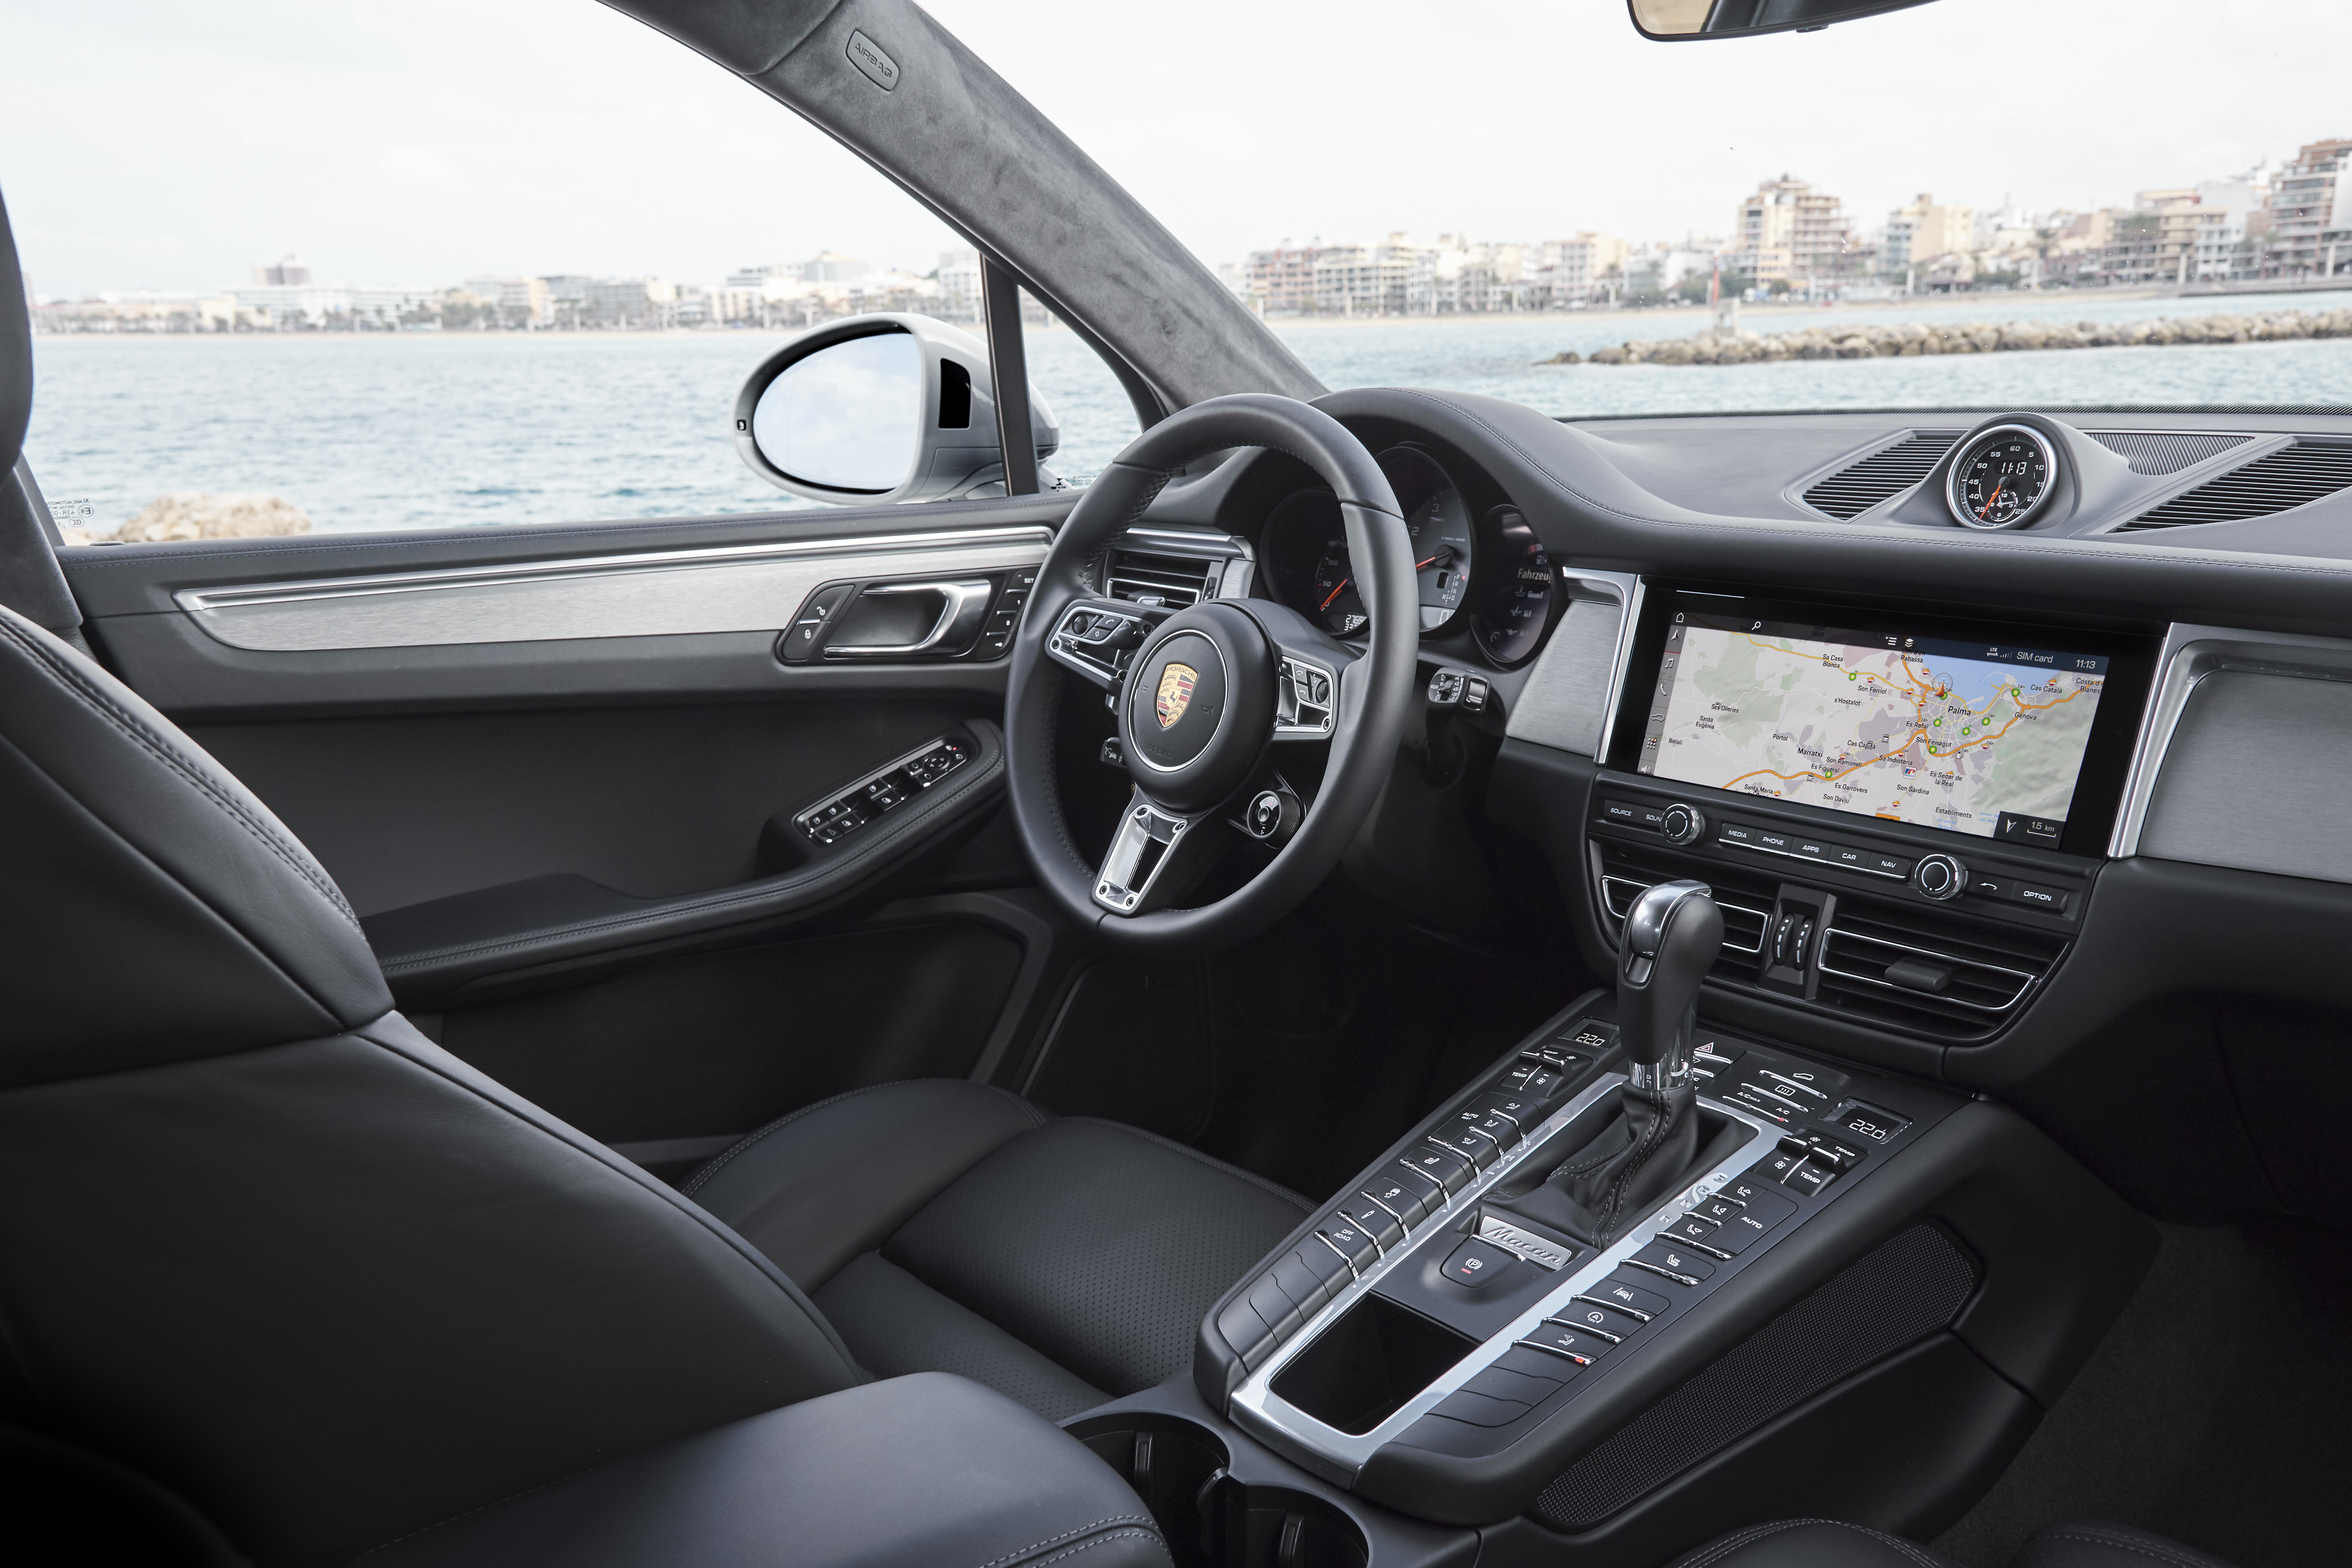 28 New 2020 Porsche Macan Specs and Review